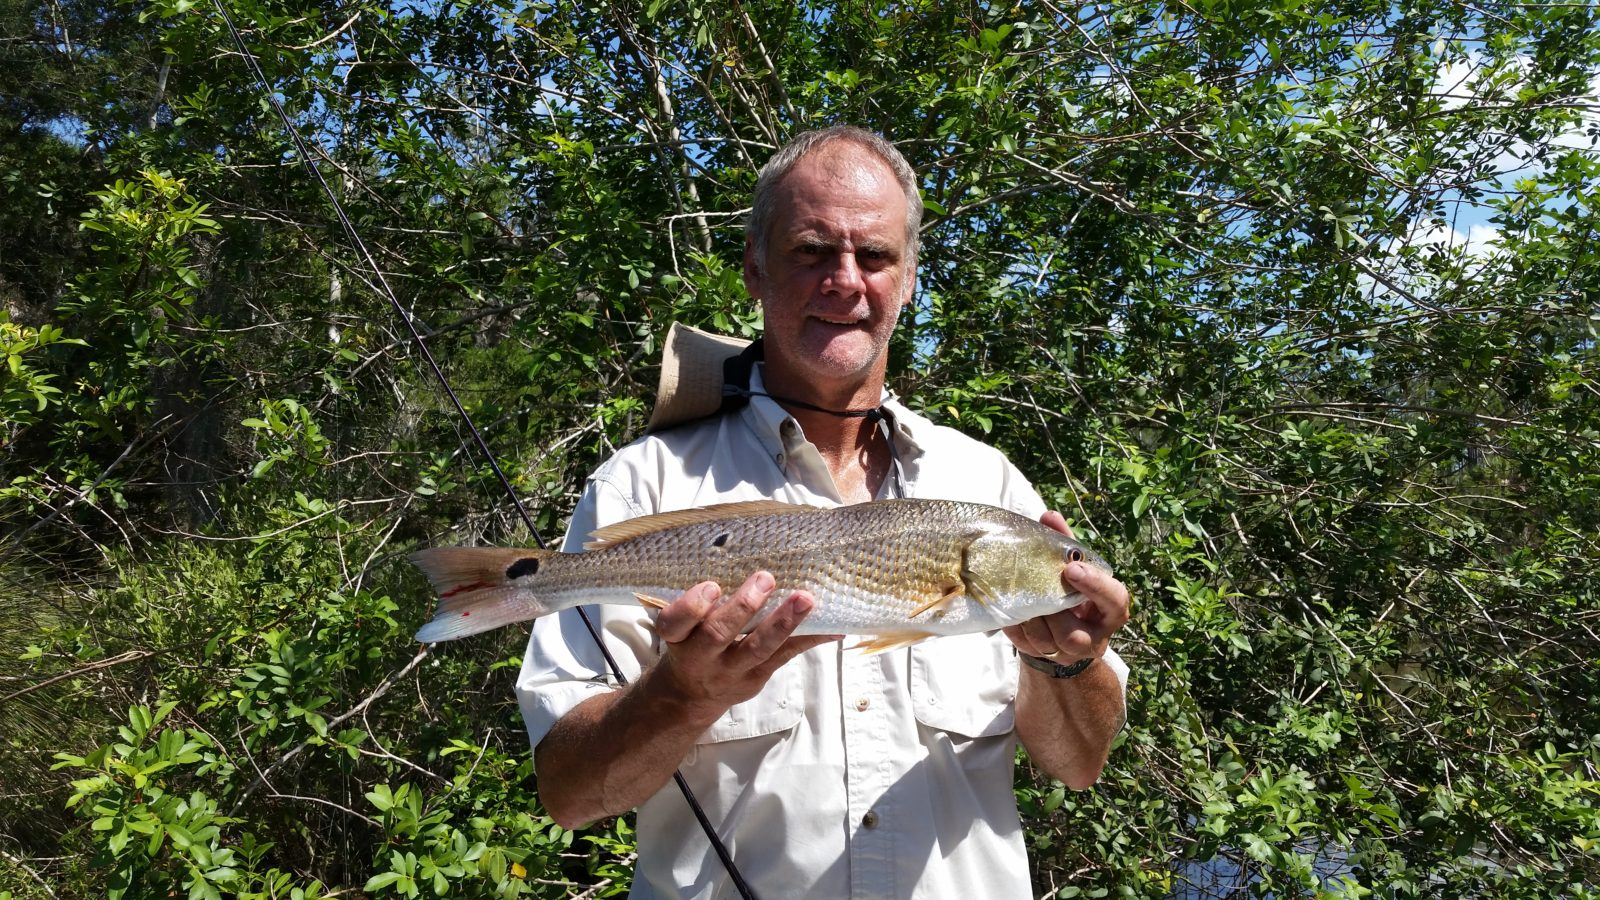 Another first Redfish caught in Tomoka State Park